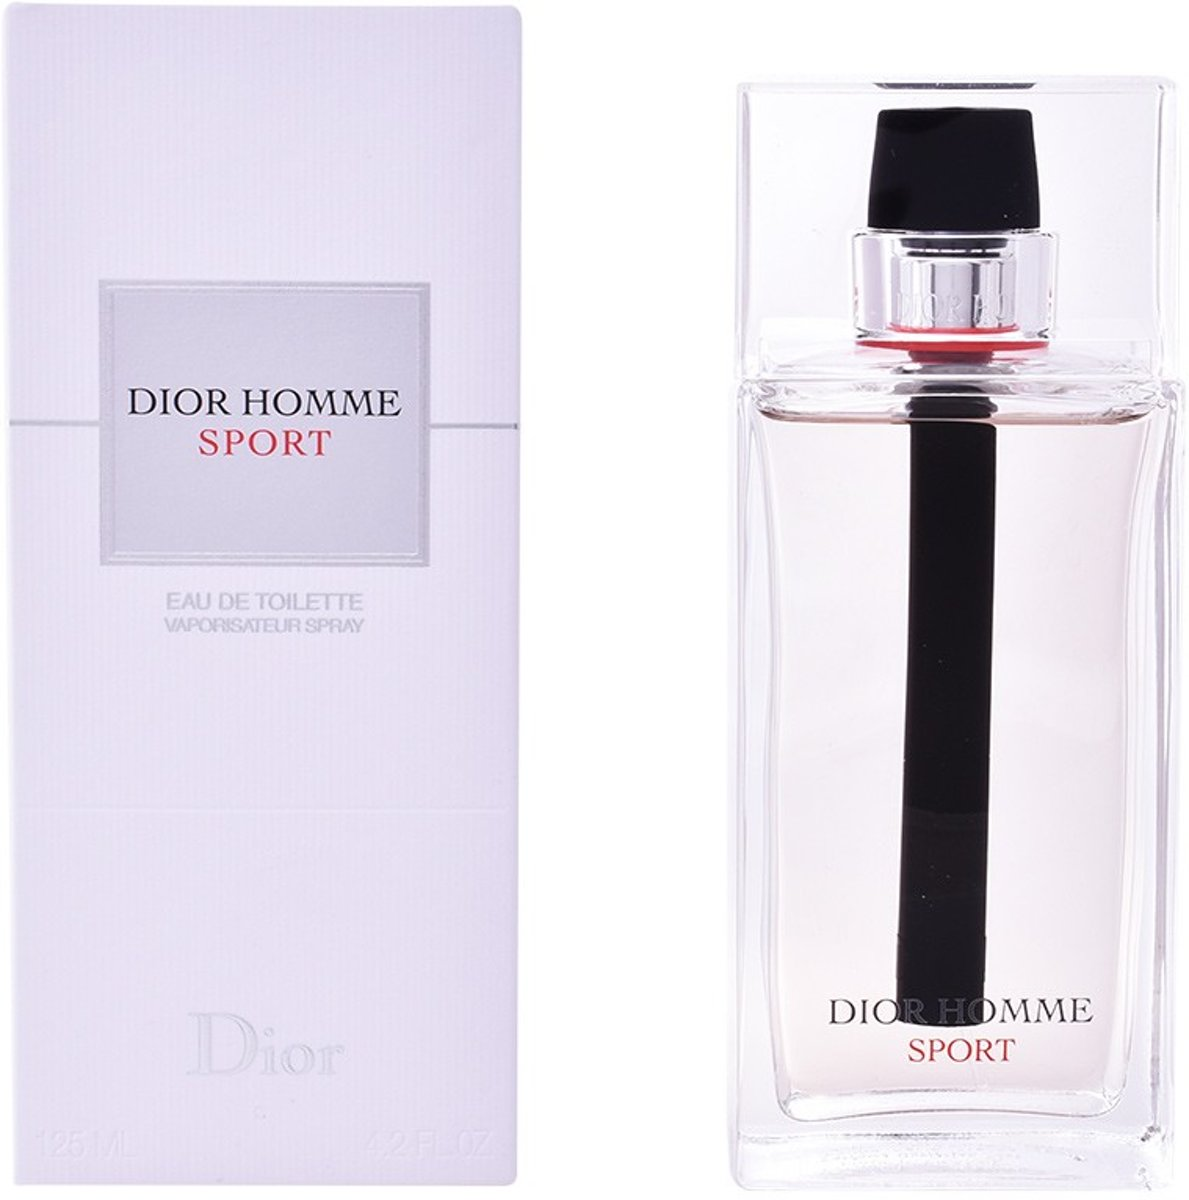 MULTI BUNDEL 2 stuks DIOR HOMME SPORT Eau de Toilette Spray 125 ml